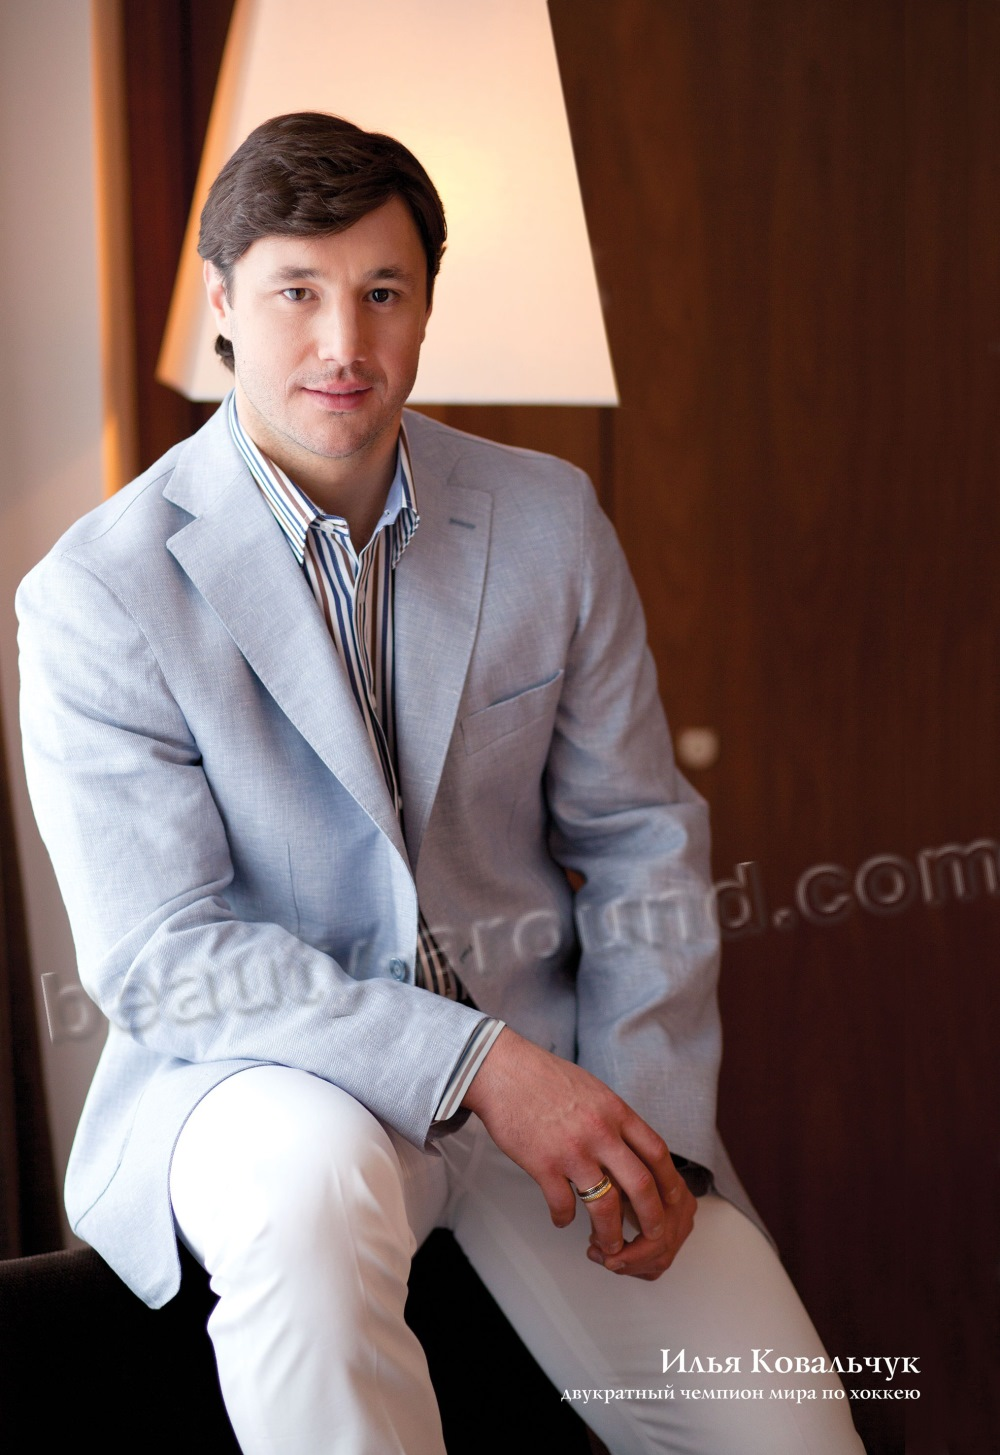 Ilya Kovalchuk is a Russian professional hockey player photo